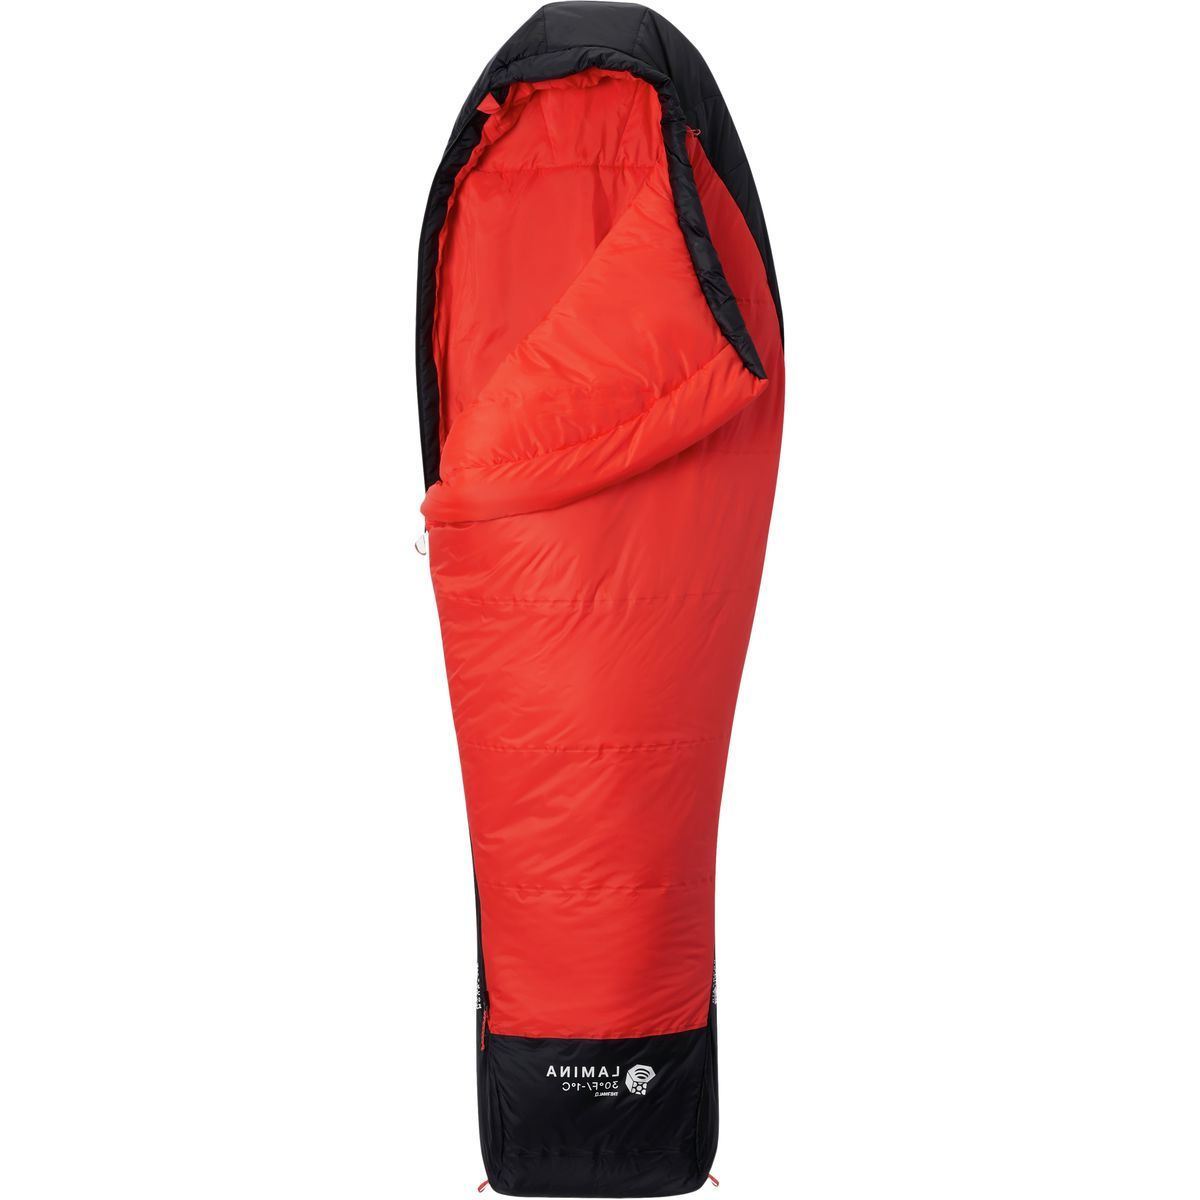 Mountain Hardwear Lamina Sleeping Bag: 0 Degree Synthetic - Women's